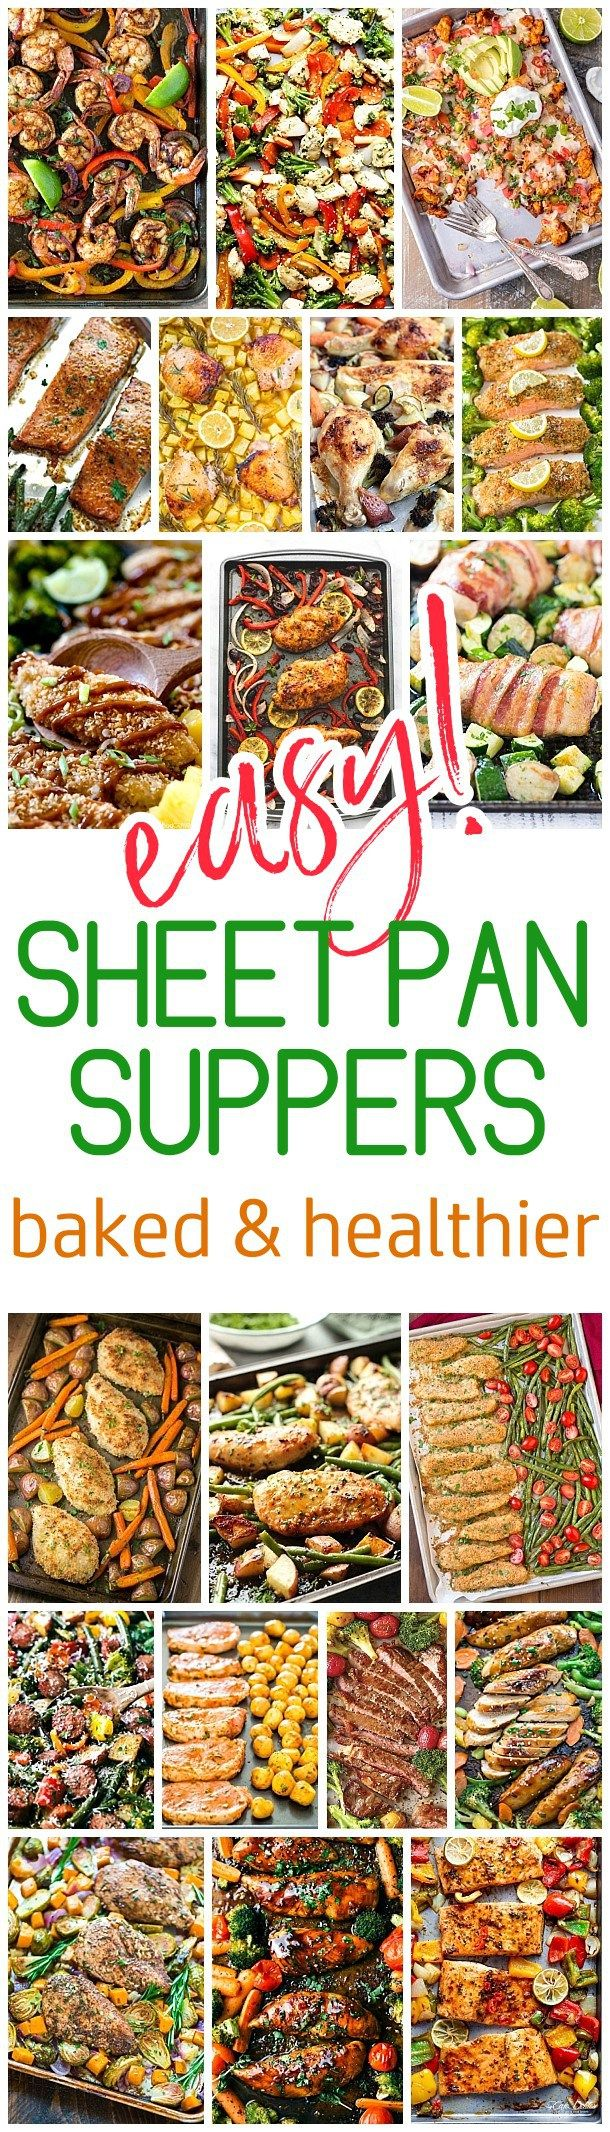 The best sheet pan suppers recipes easy and quick baked family the best sheet pan suppers recipes easy and quick baked family lunch and simple dinner meal ideas using only one baking sheet pan forumfinder Gallery